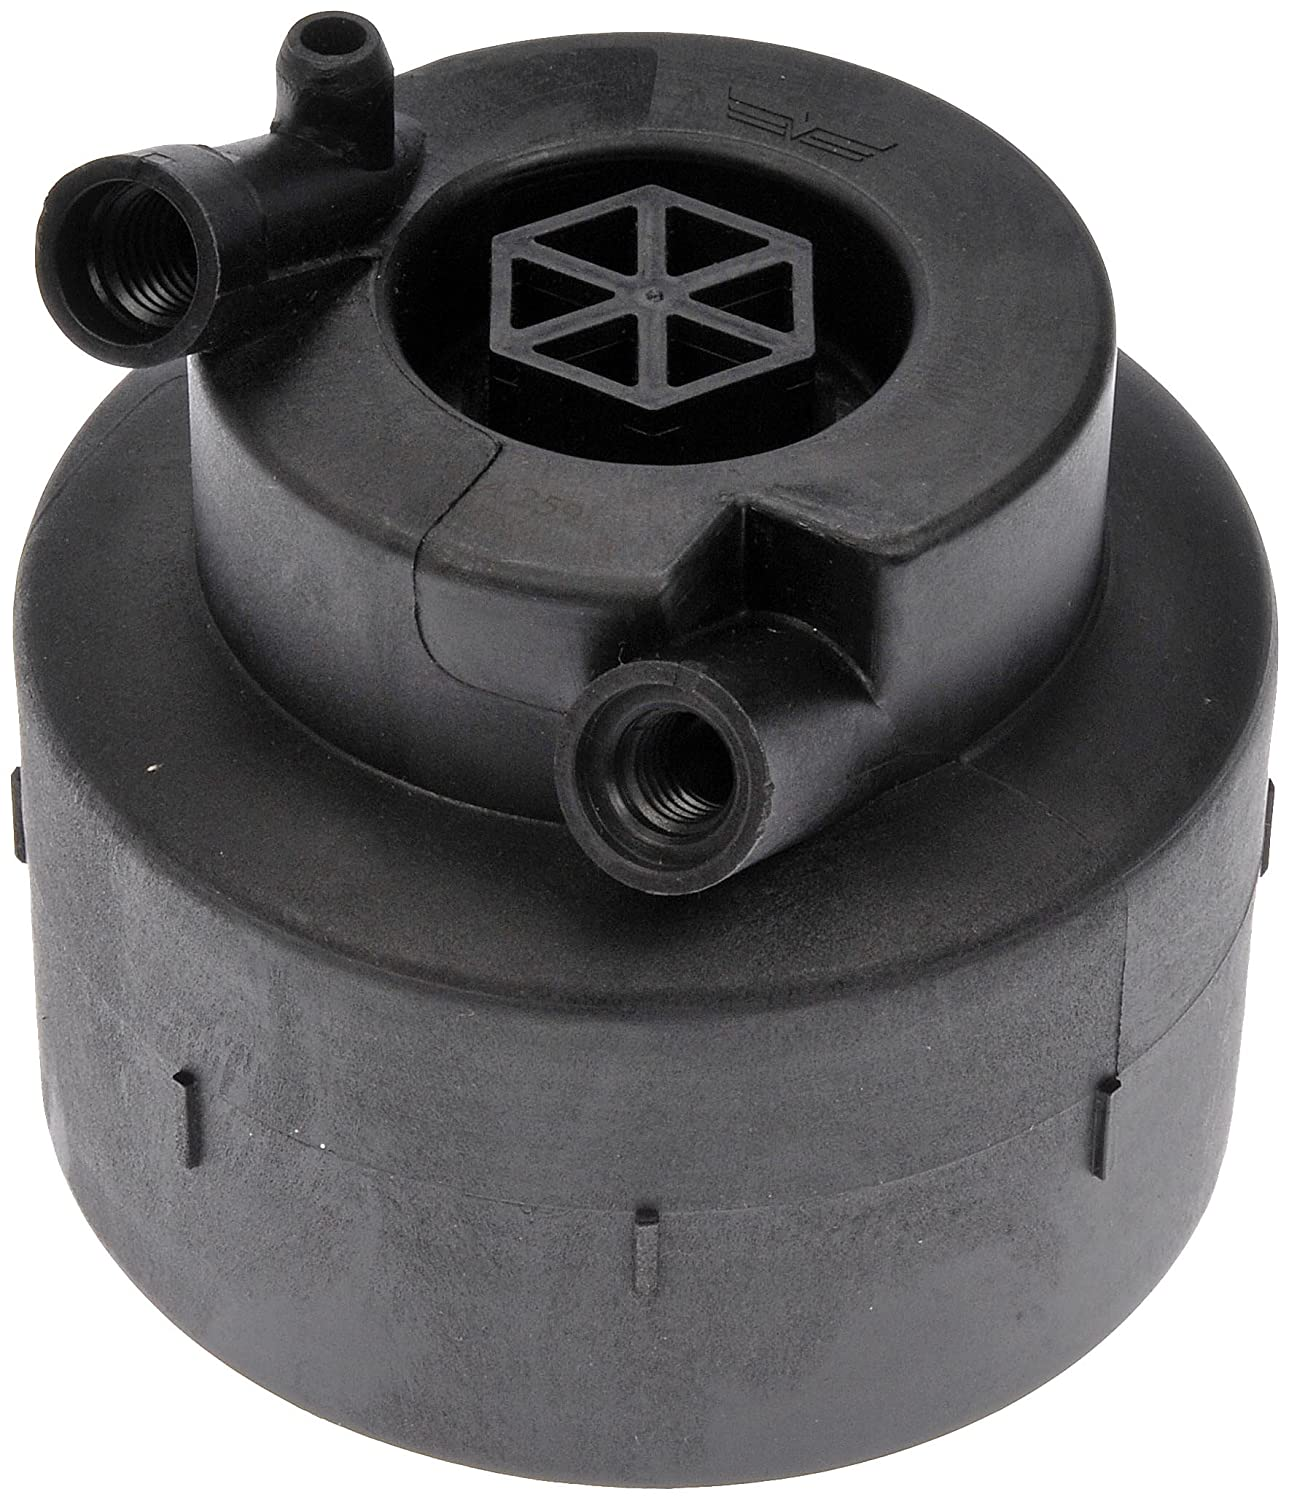 Dorman 904 244 Fuel Filter Cap Automotive 1999 Ford F 250 Gasket